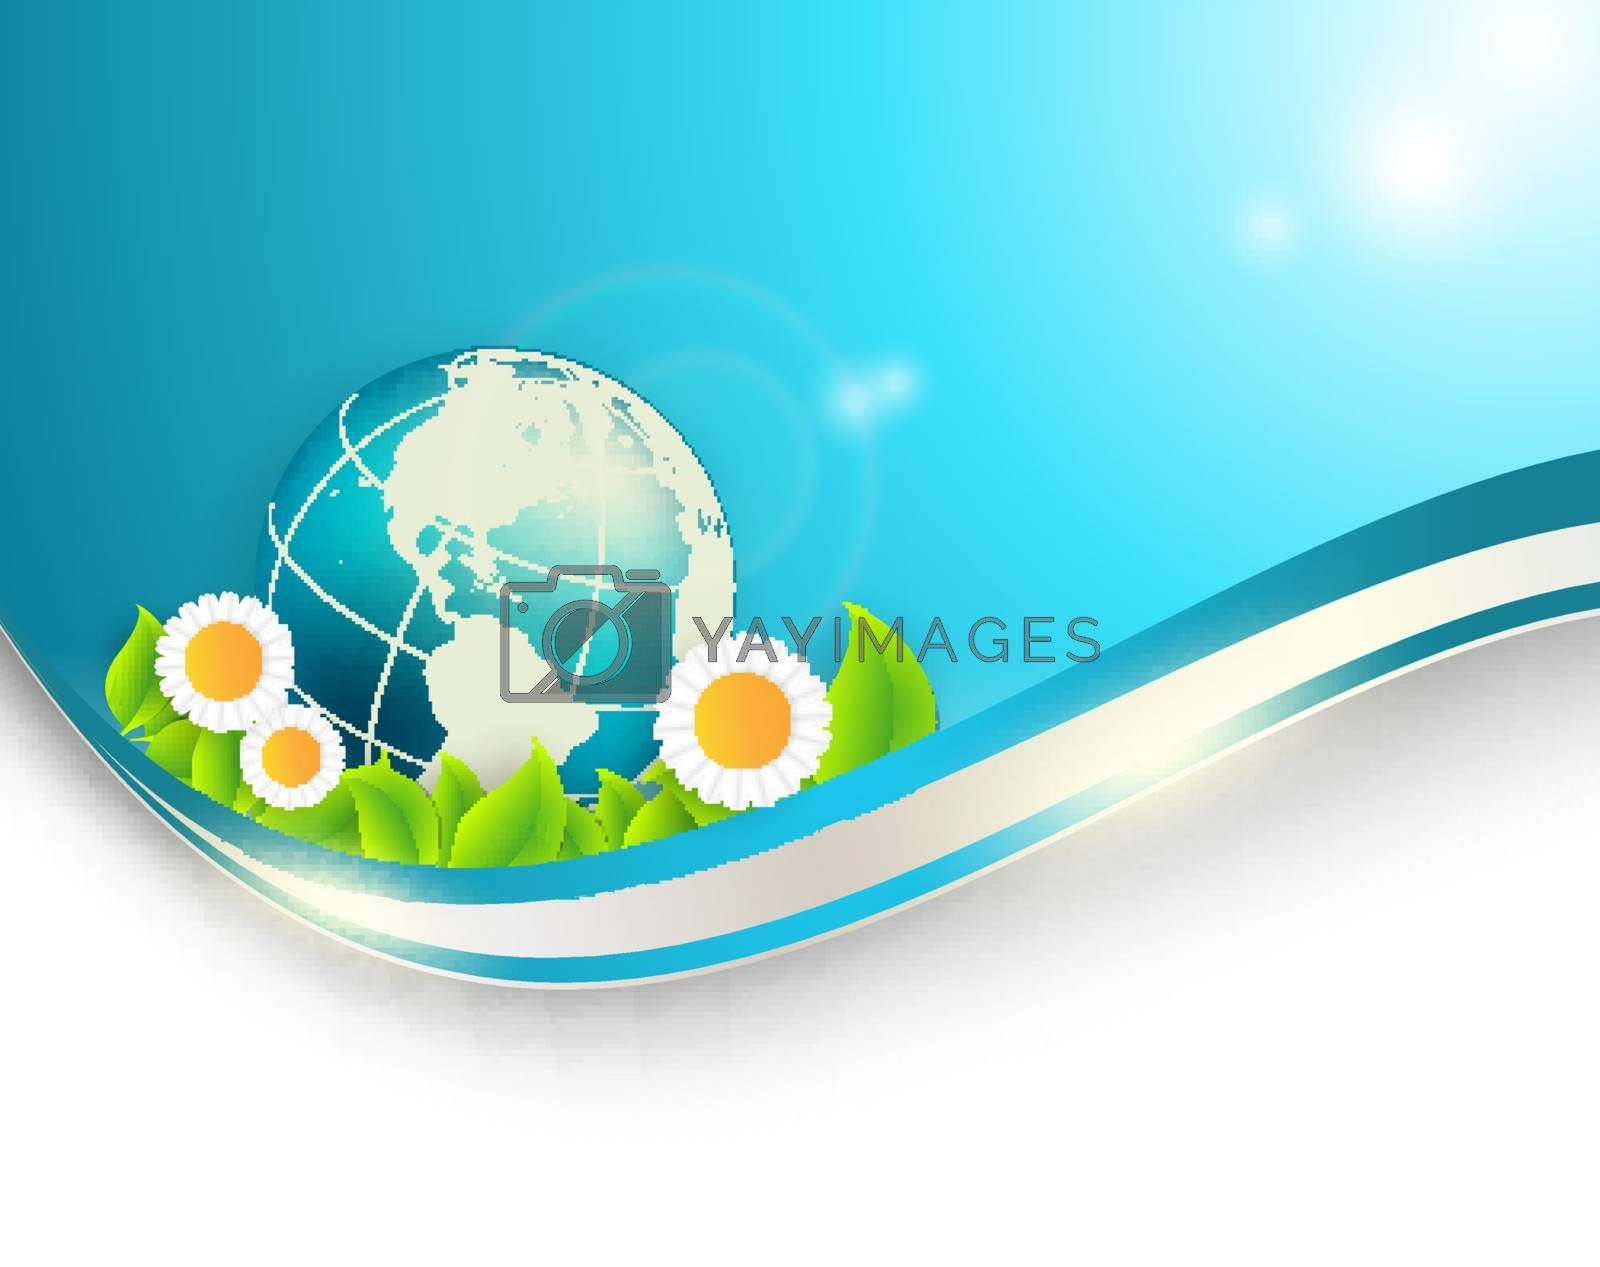 Royalty free image of floral environmental vector frame with globe by marivlada